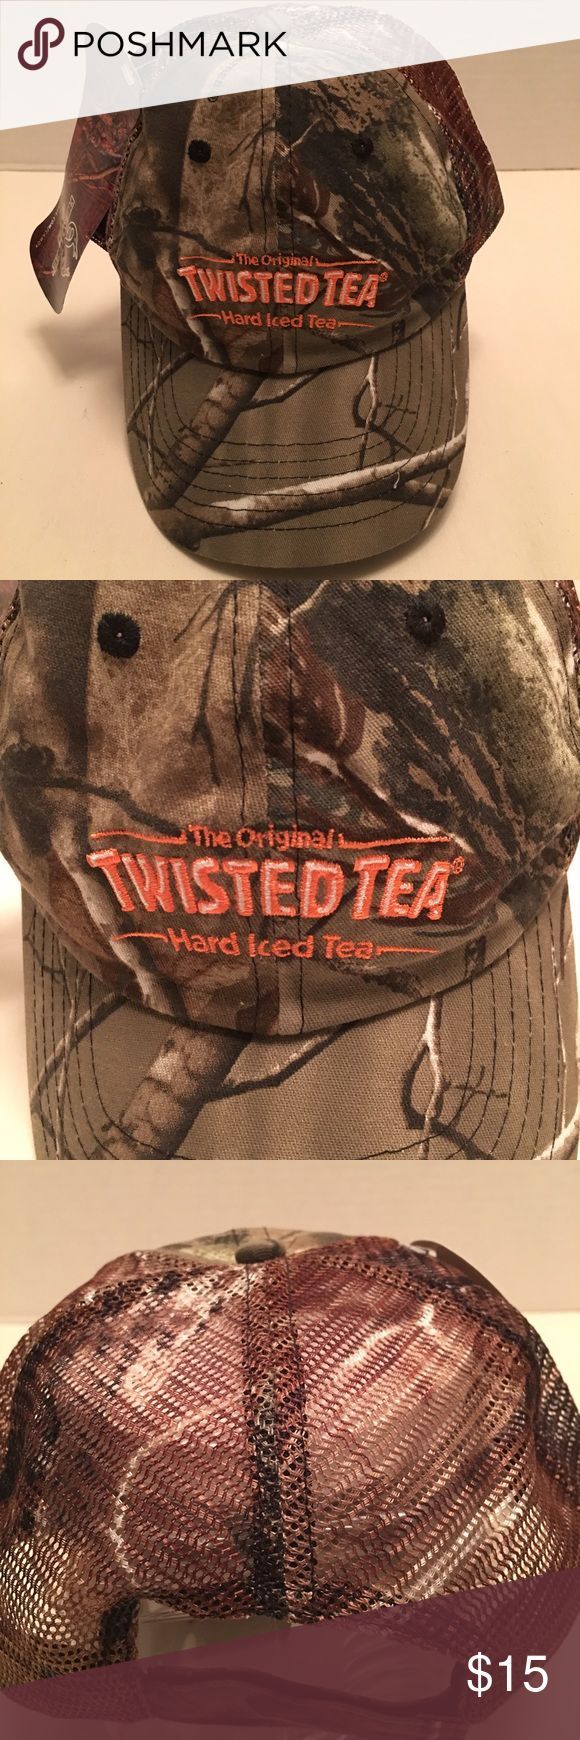 Men's Realtree Mesh Back Camo Twisted Tea Hat Cap Up for sale is the NWT men's Realtree Twisted Tea advertising hat cap that you see pictured. There is a mesh back. There are no rips or tears or stains. Realtree Accessories Hats